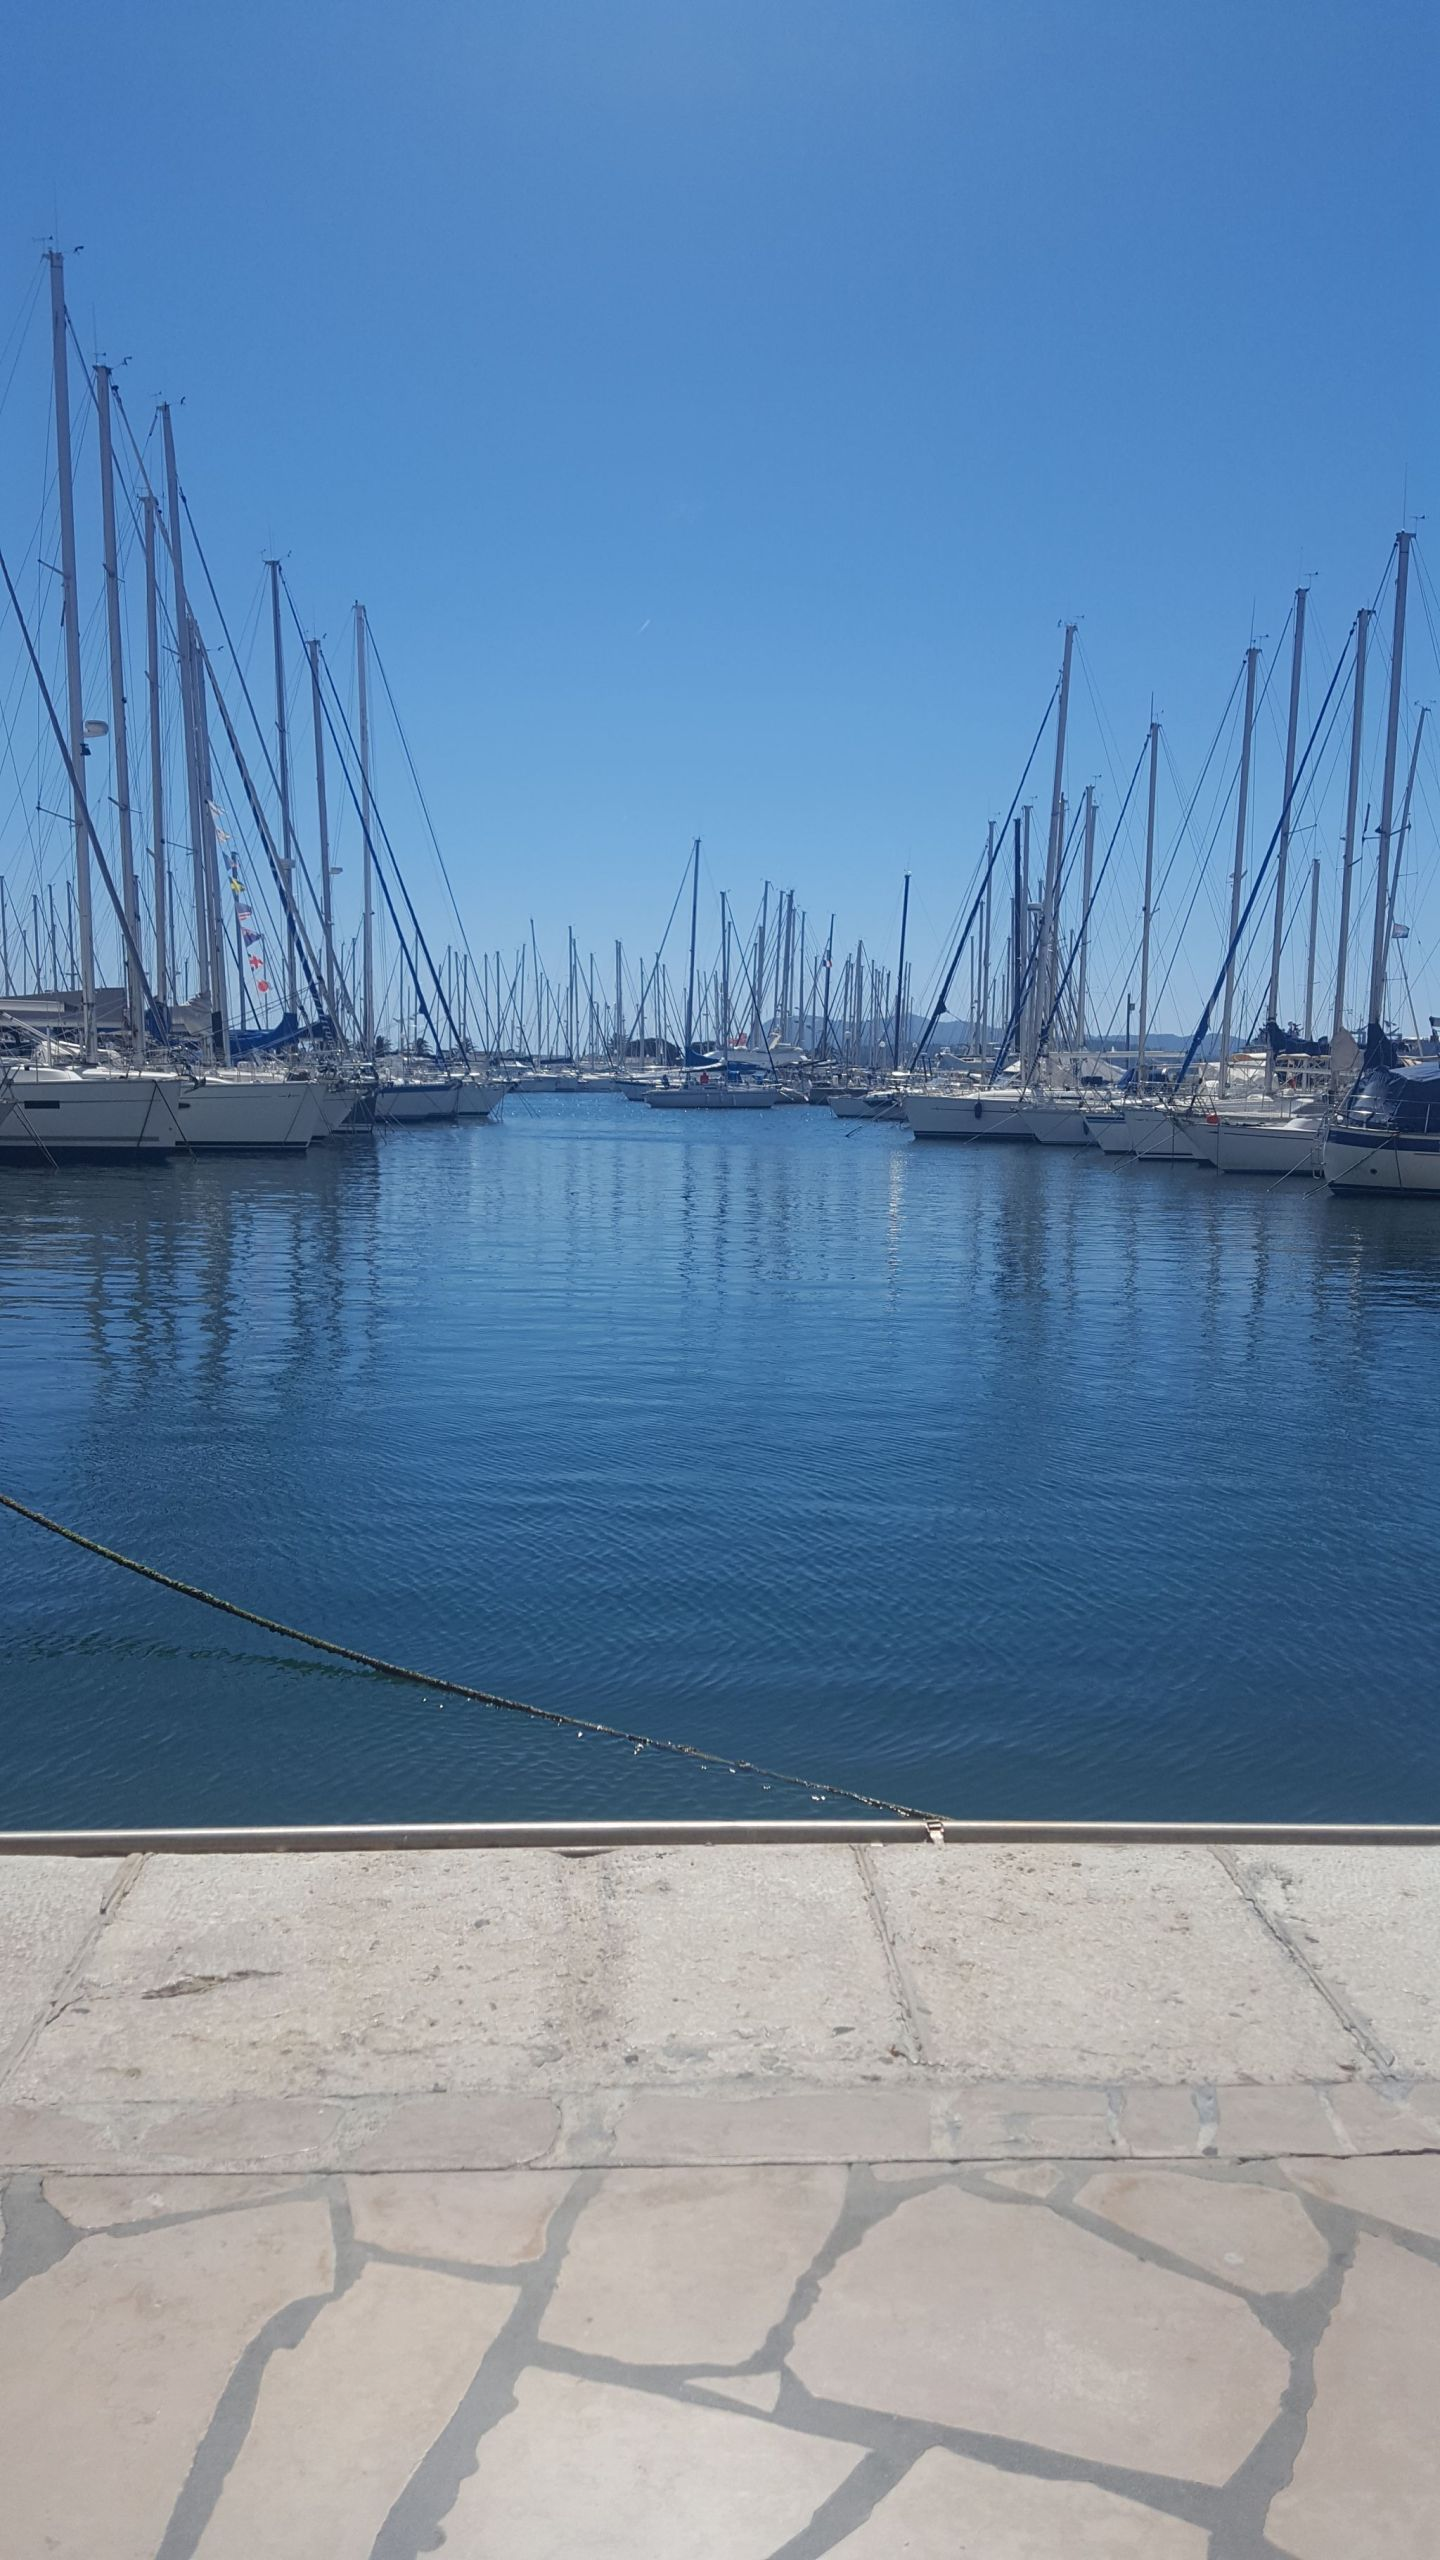 South of France marina